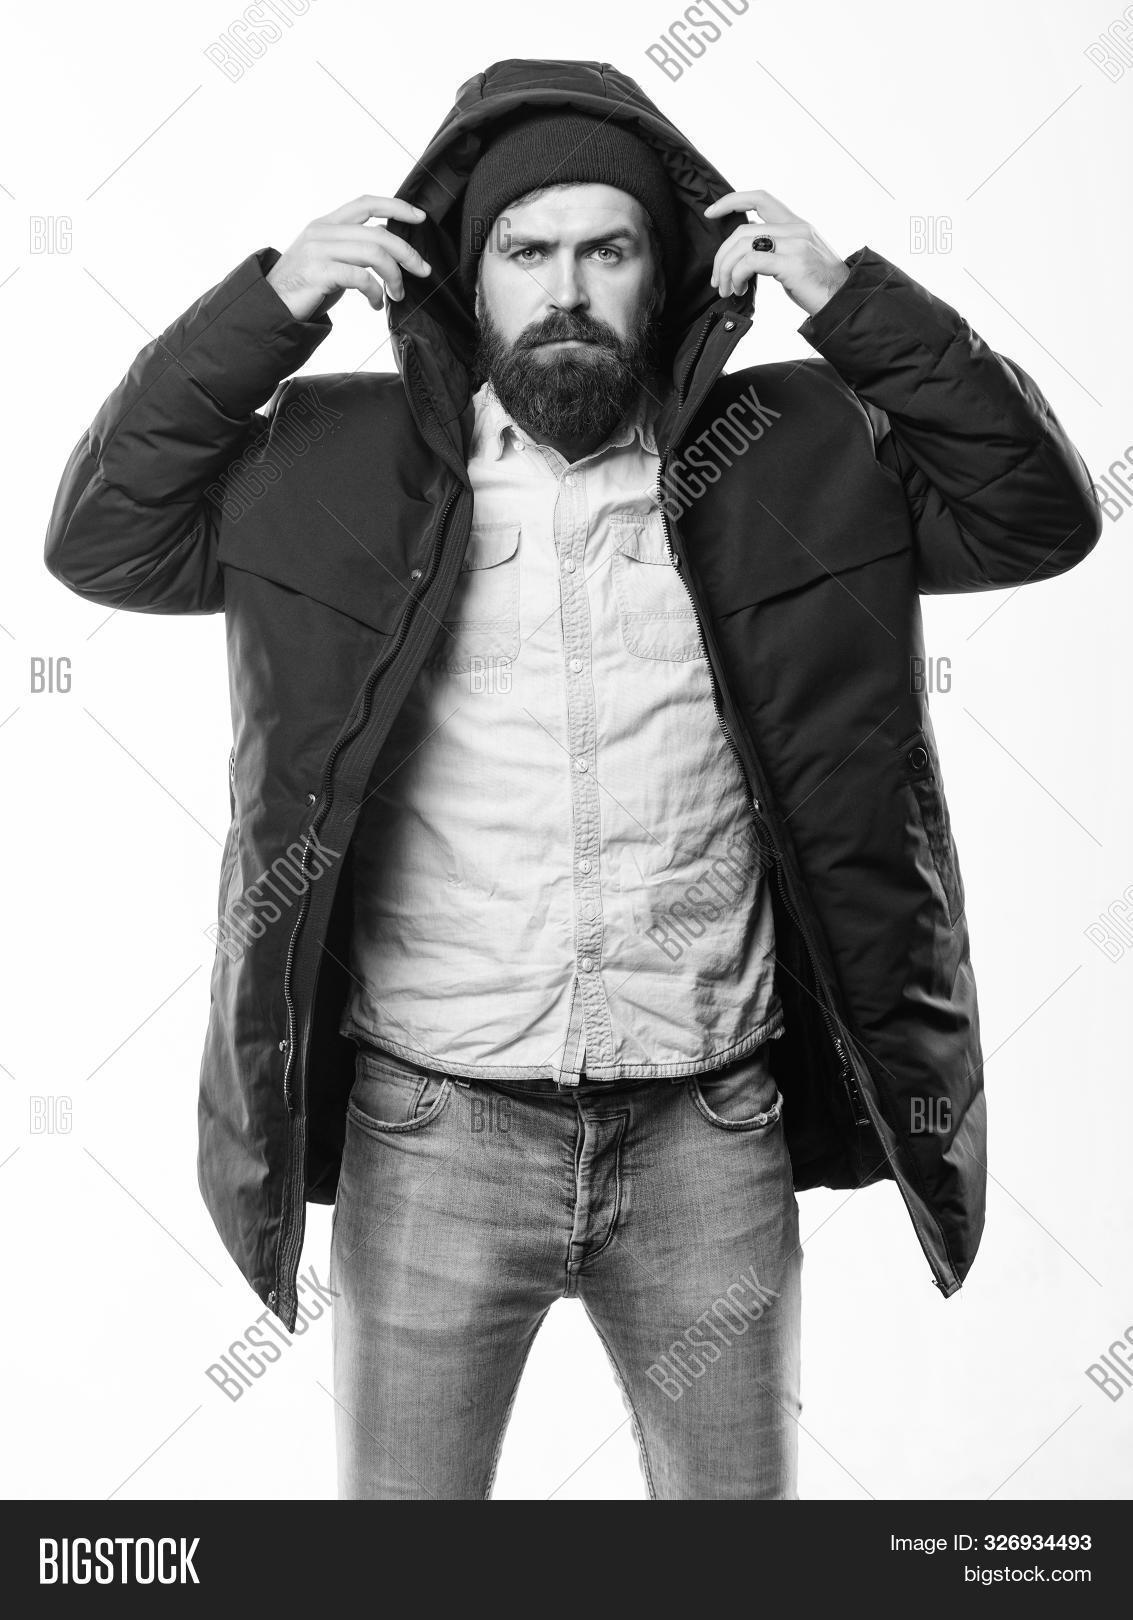 adult,attractive,background,beard,bearded,black,brutal,casual,caucasian,cloth,clothes,clothing,coat,comfortable,concept,confidence,confident,face,fashion,fashionable,guy,handsome,hat,hipster,isolated,jacket,lifestyle,macho,man,masculine,masculinity,menswear,modern,mustache,outfit,parka,serious,stand,style,stylish,trendy,warm,wear,weather,white,winter